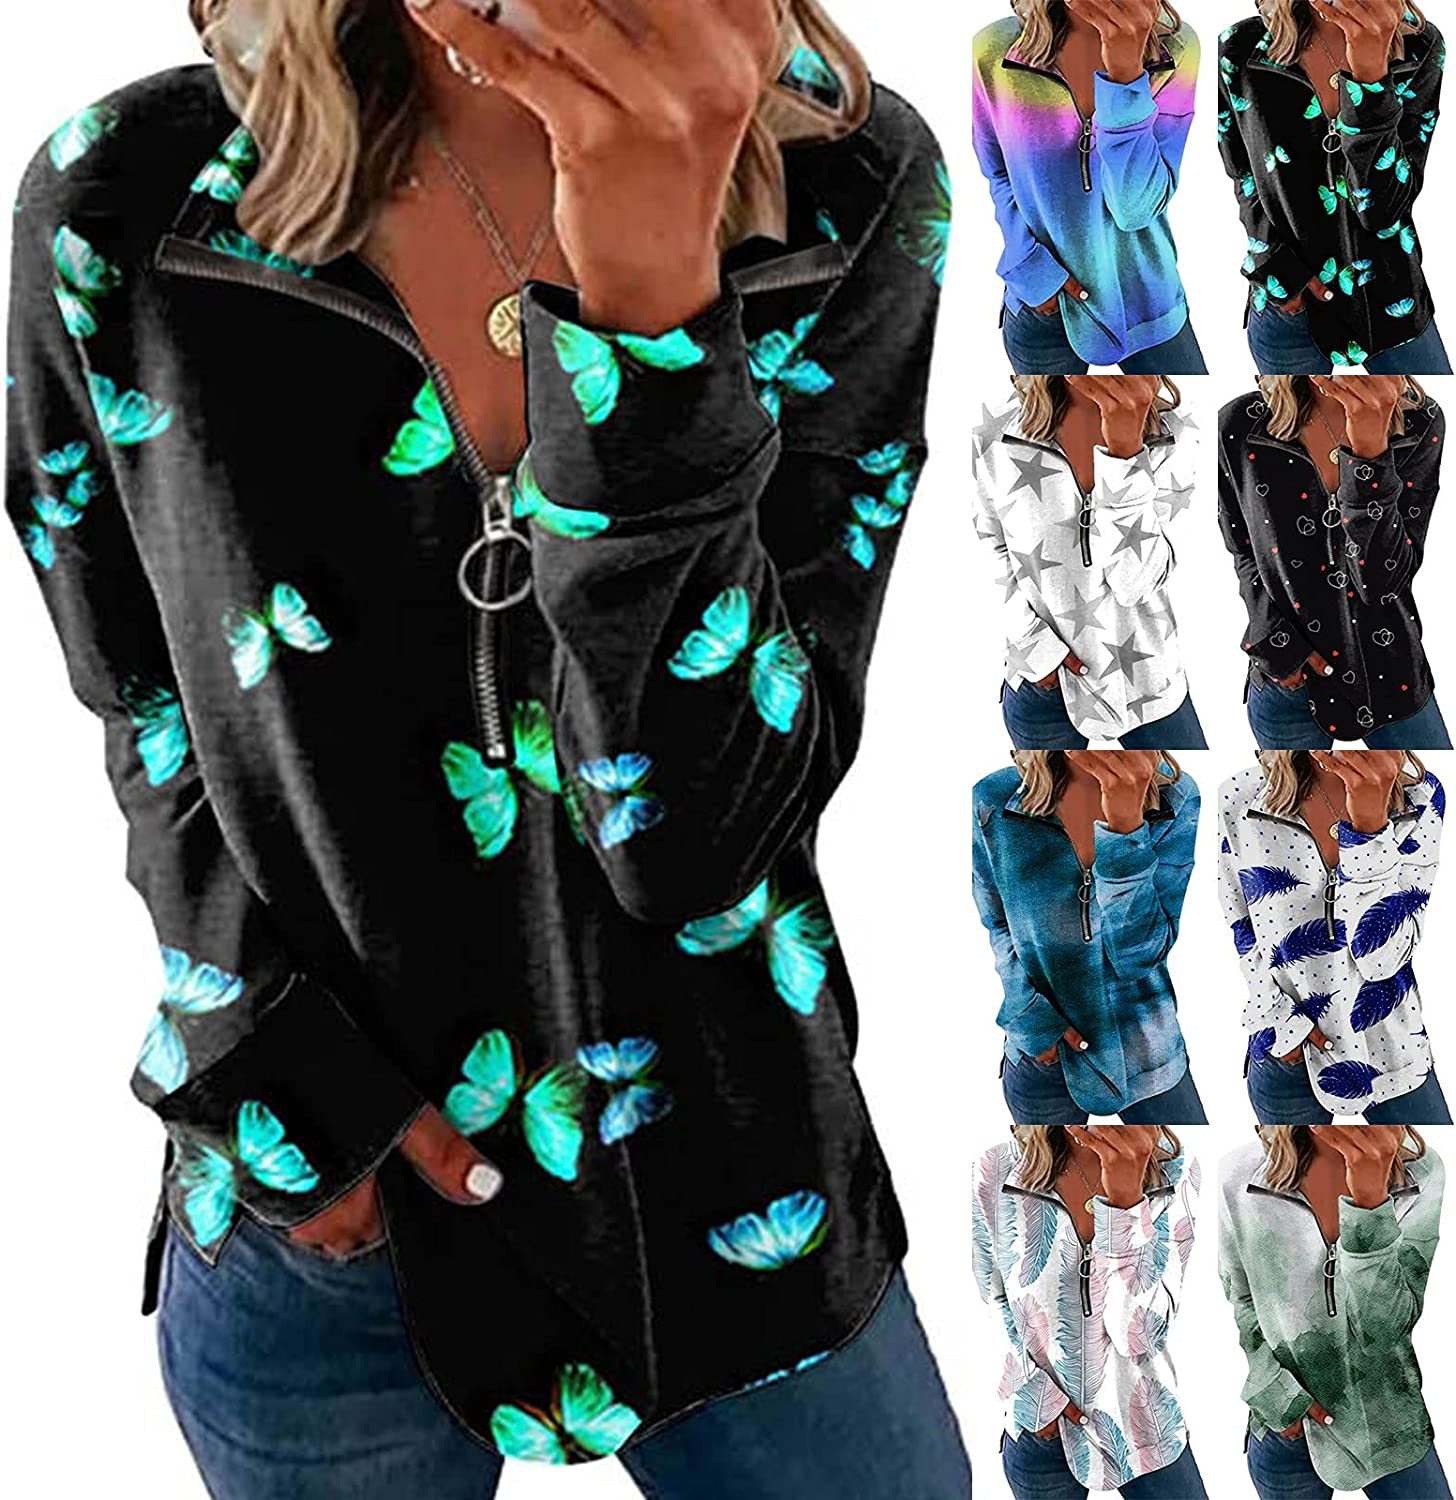 VonVonCo Pullover Sweaters for Women Casual V-Neck Fashion Loose Flower Print Sweatshirt Zipper Lapel Long Sleeve Tops